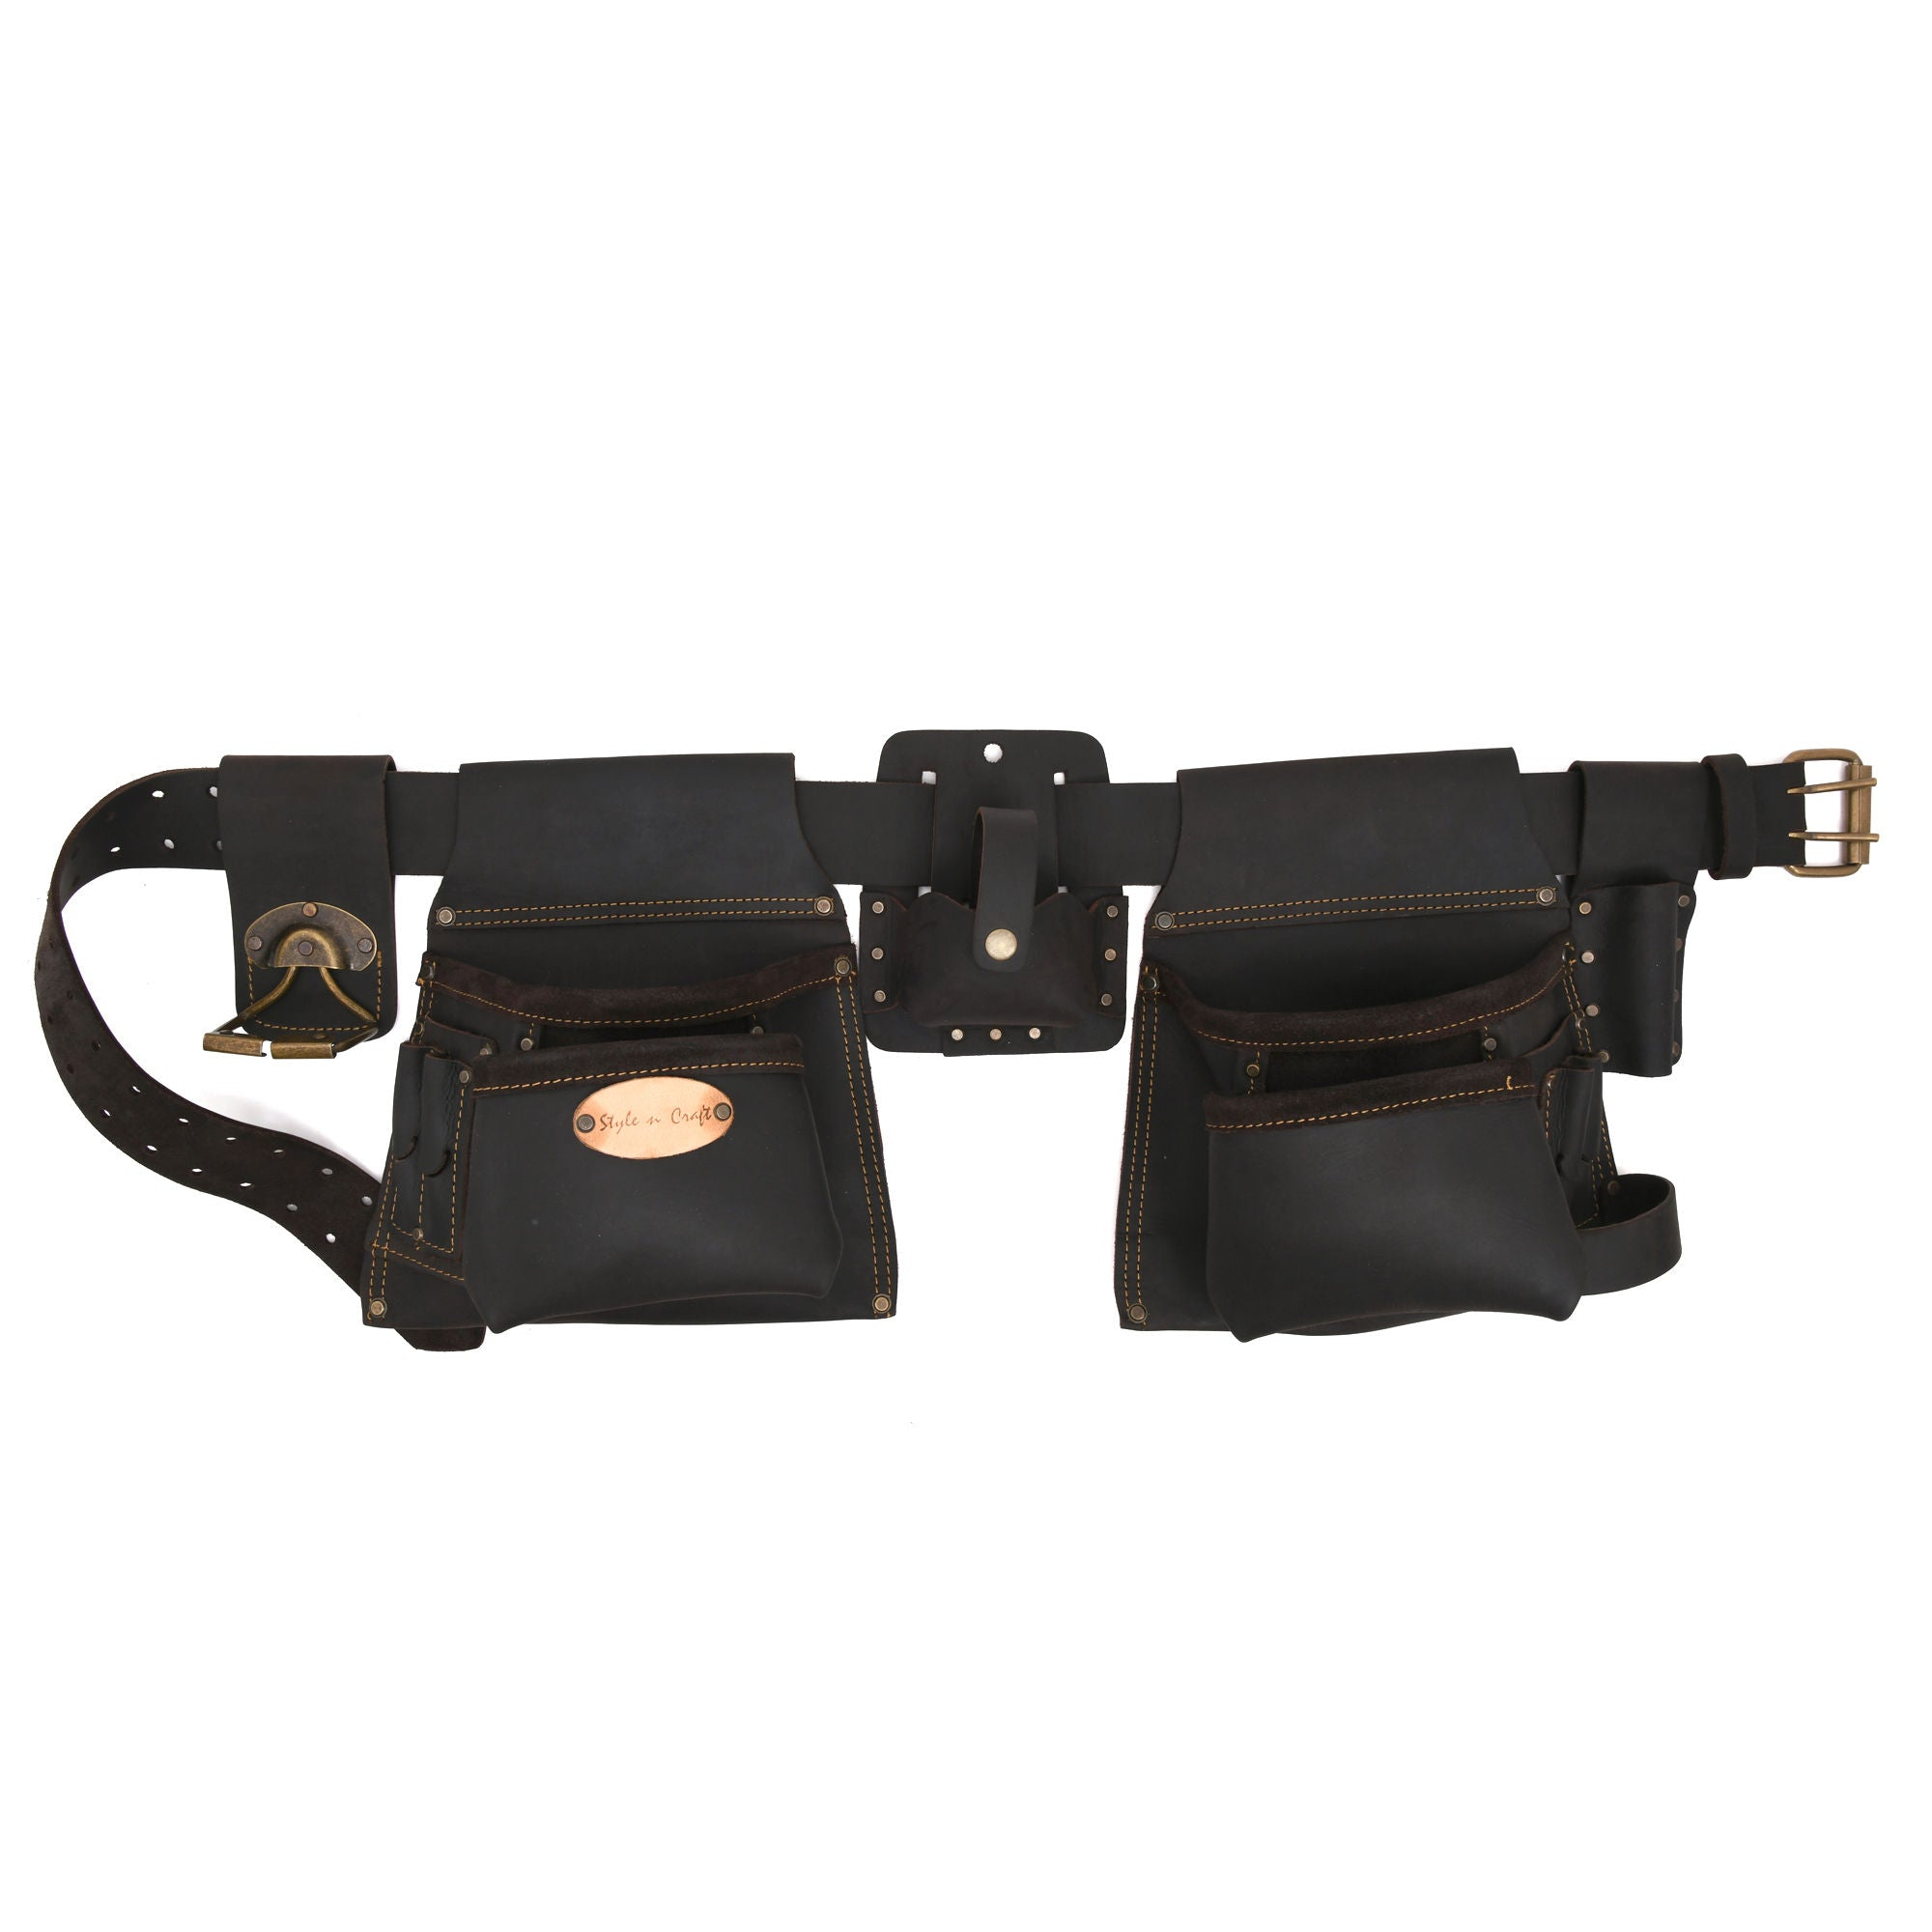 Style n Craft 90420 - 6 Piece 10 Pocket Carpenter's Combo Tool Belt in Oiled Top Grain Leather in Dark Brown Color. Combo consists of 2 Pouches, 1 Large Tape Holder, 1 Spring Loaded Swivel Hammer Holder, 1 Prybar Holder & 1 Belt with Double Prong Metal Roller Buckle